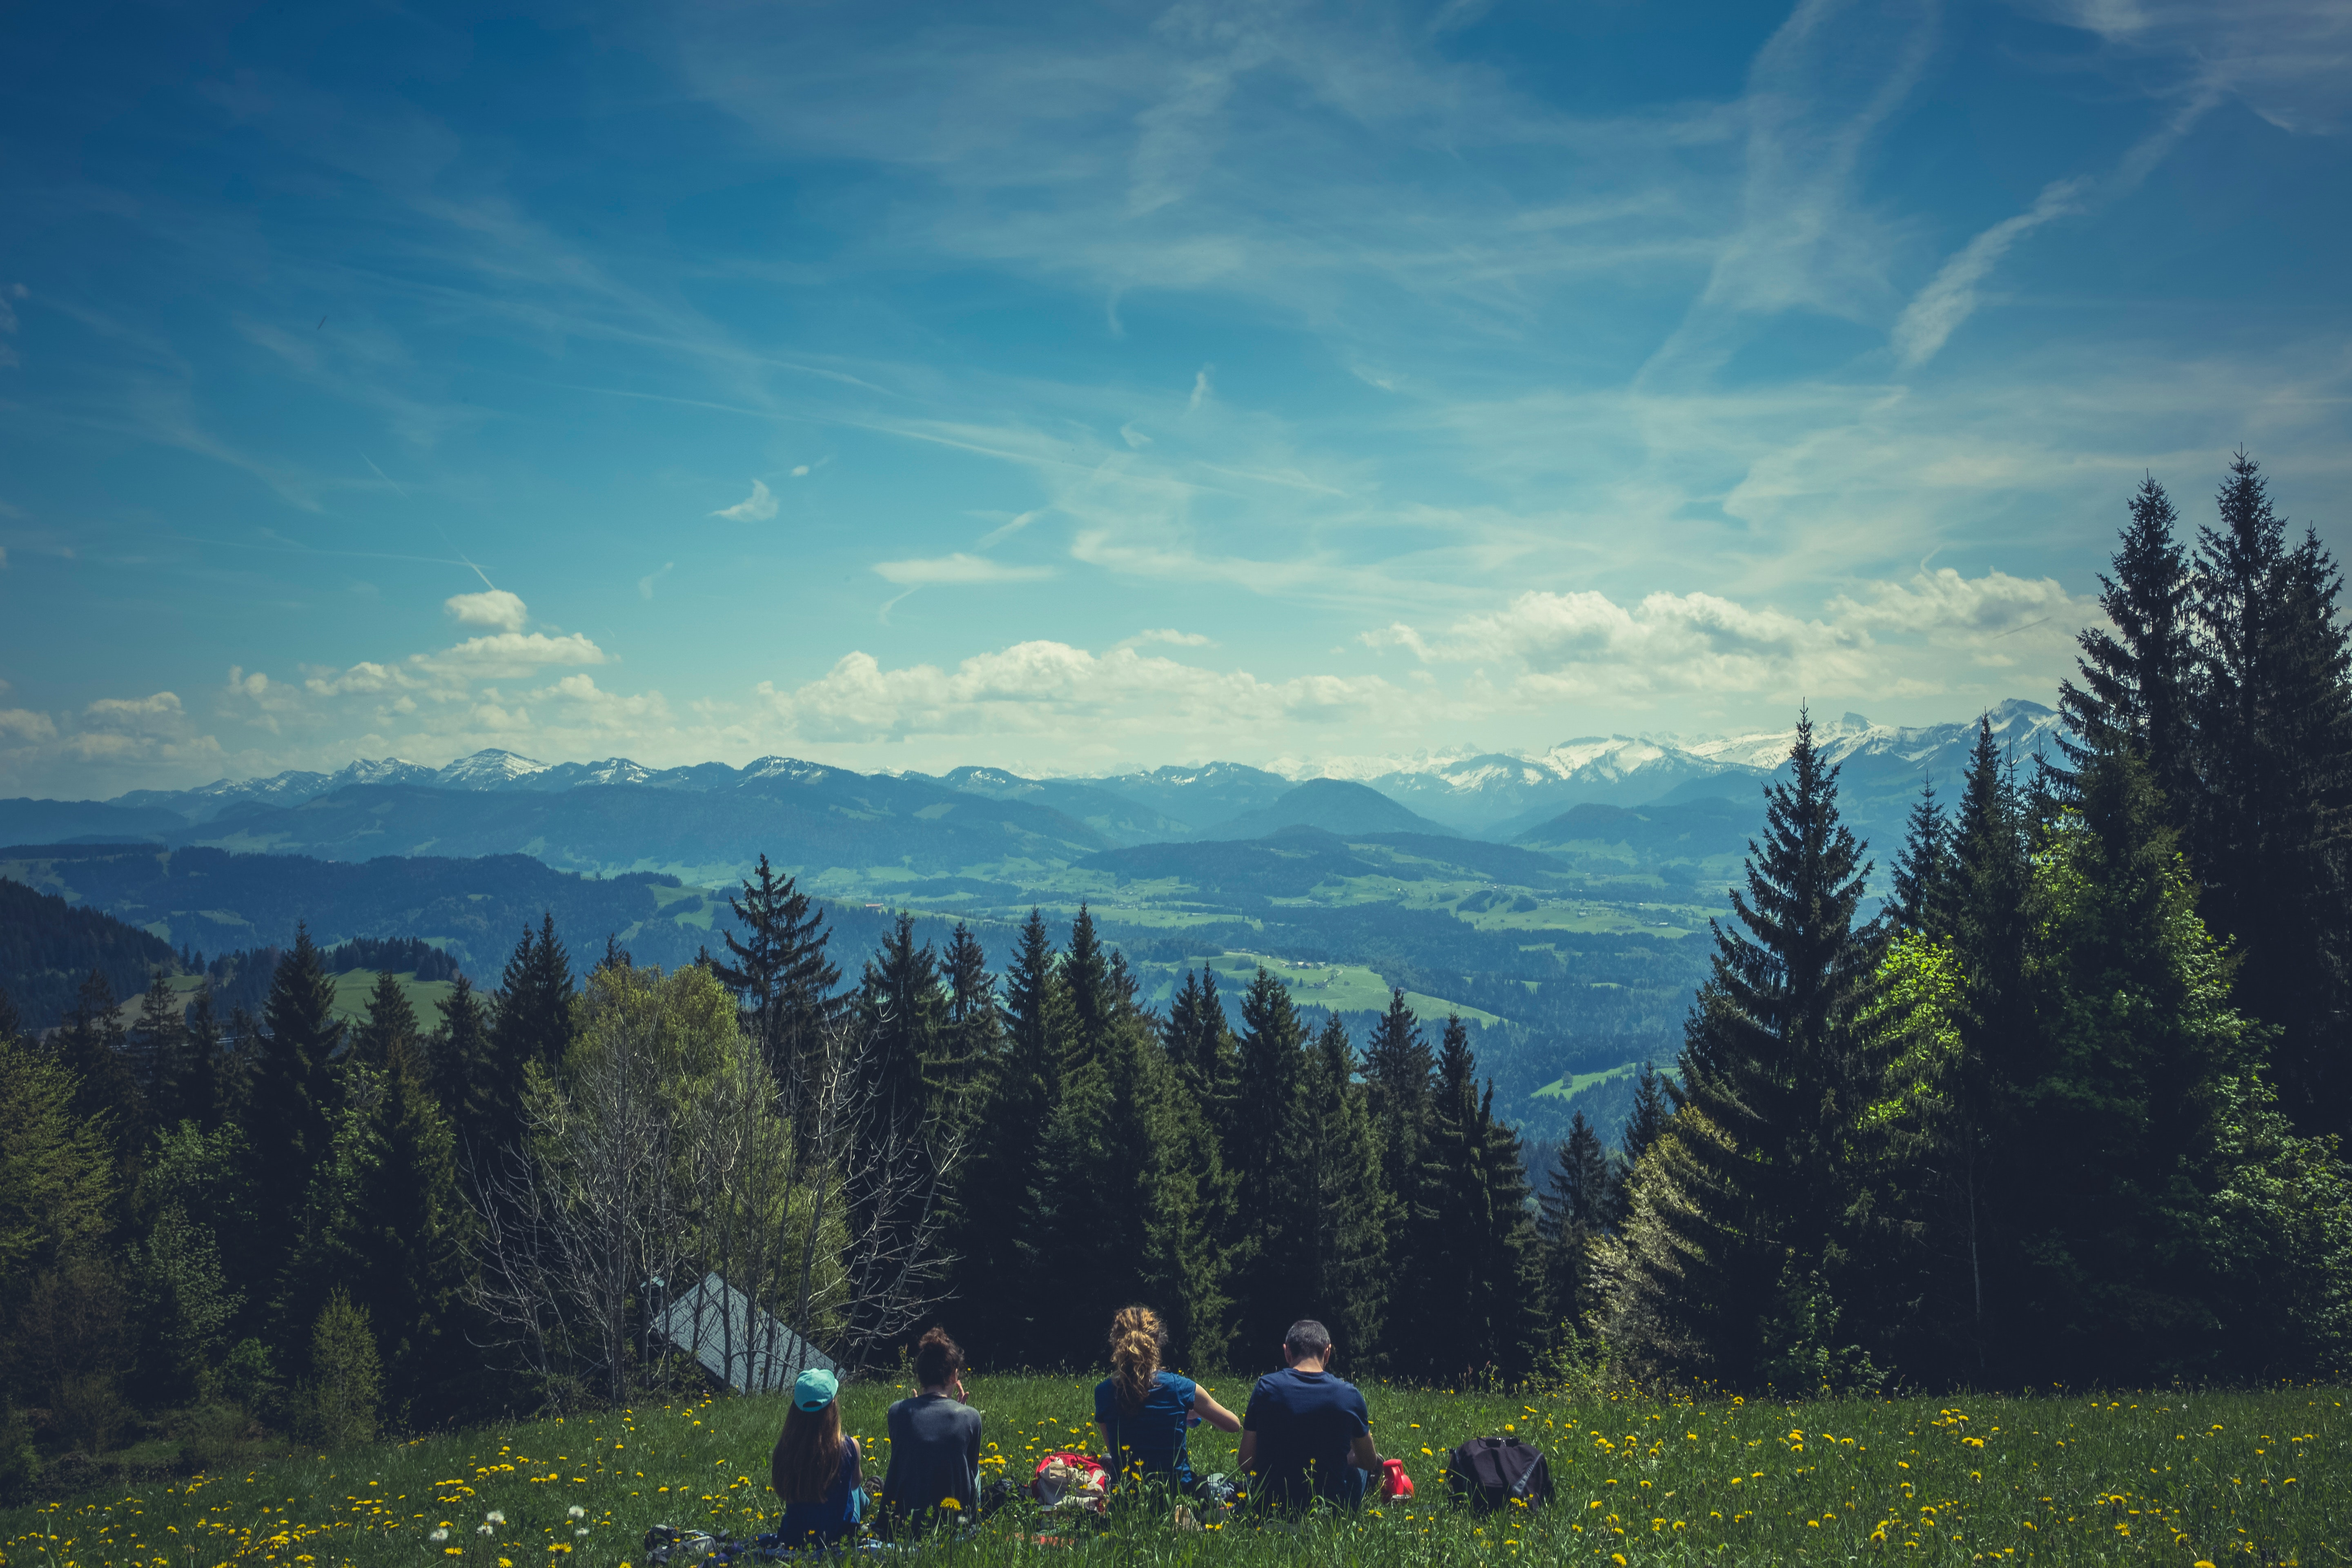 People Sitting on Green Grass, Adventure, Outdoors, Vacation, Trees, HQ Photo